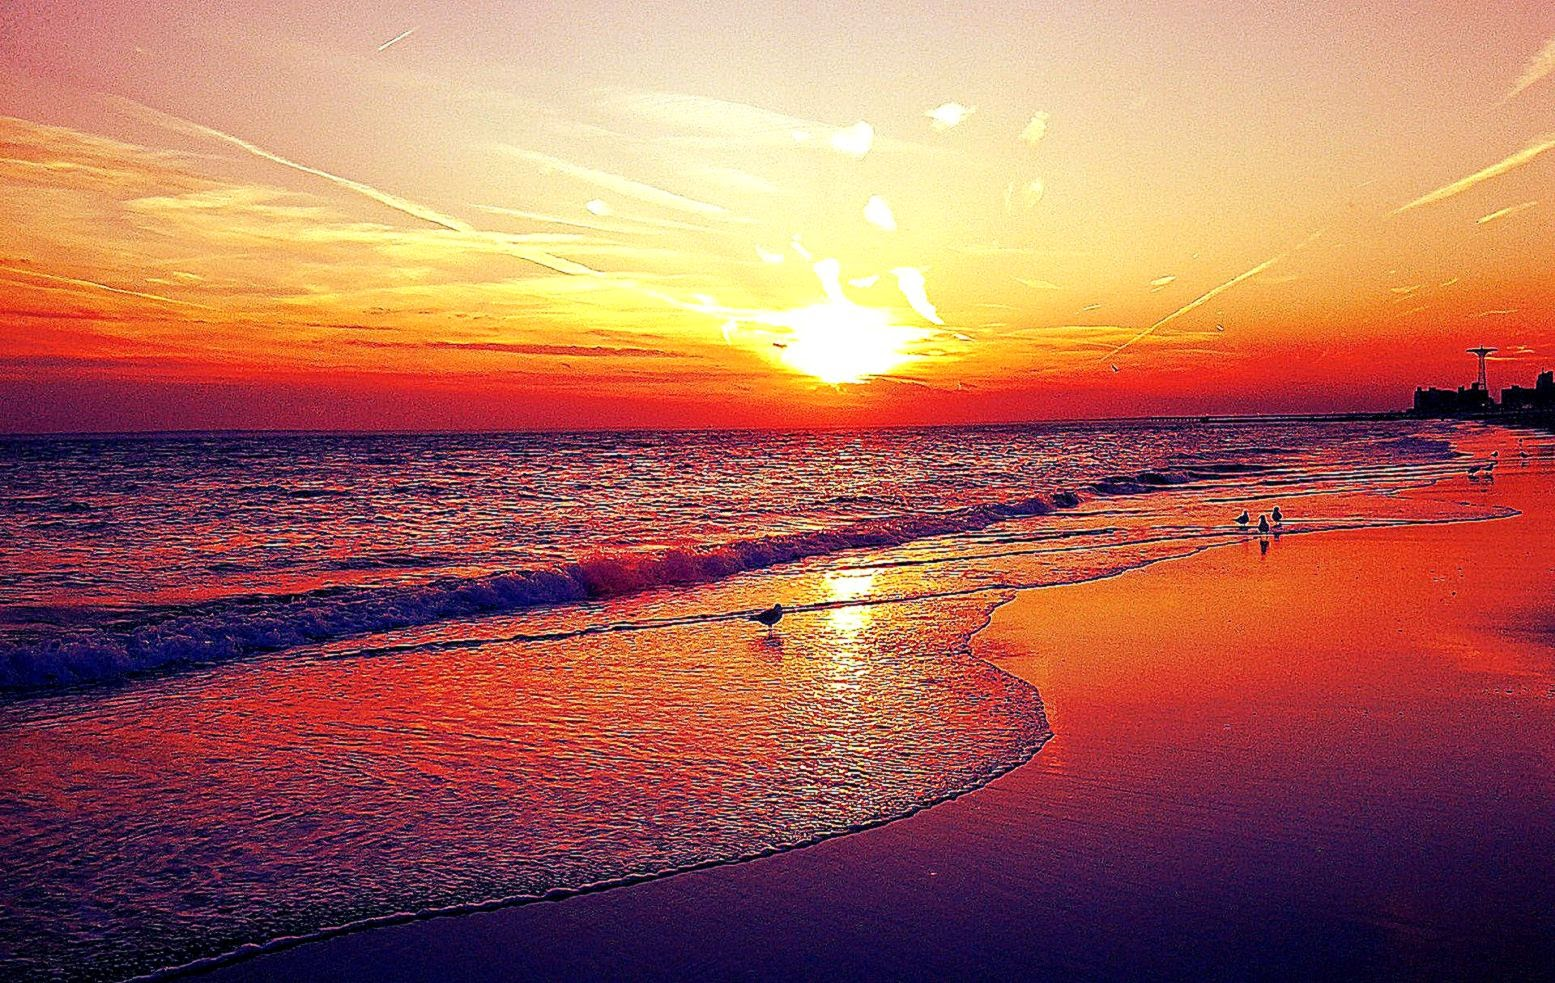 Sunset Beach HD Wallpapers Beach sunset Desktop Images Cool 1555x983